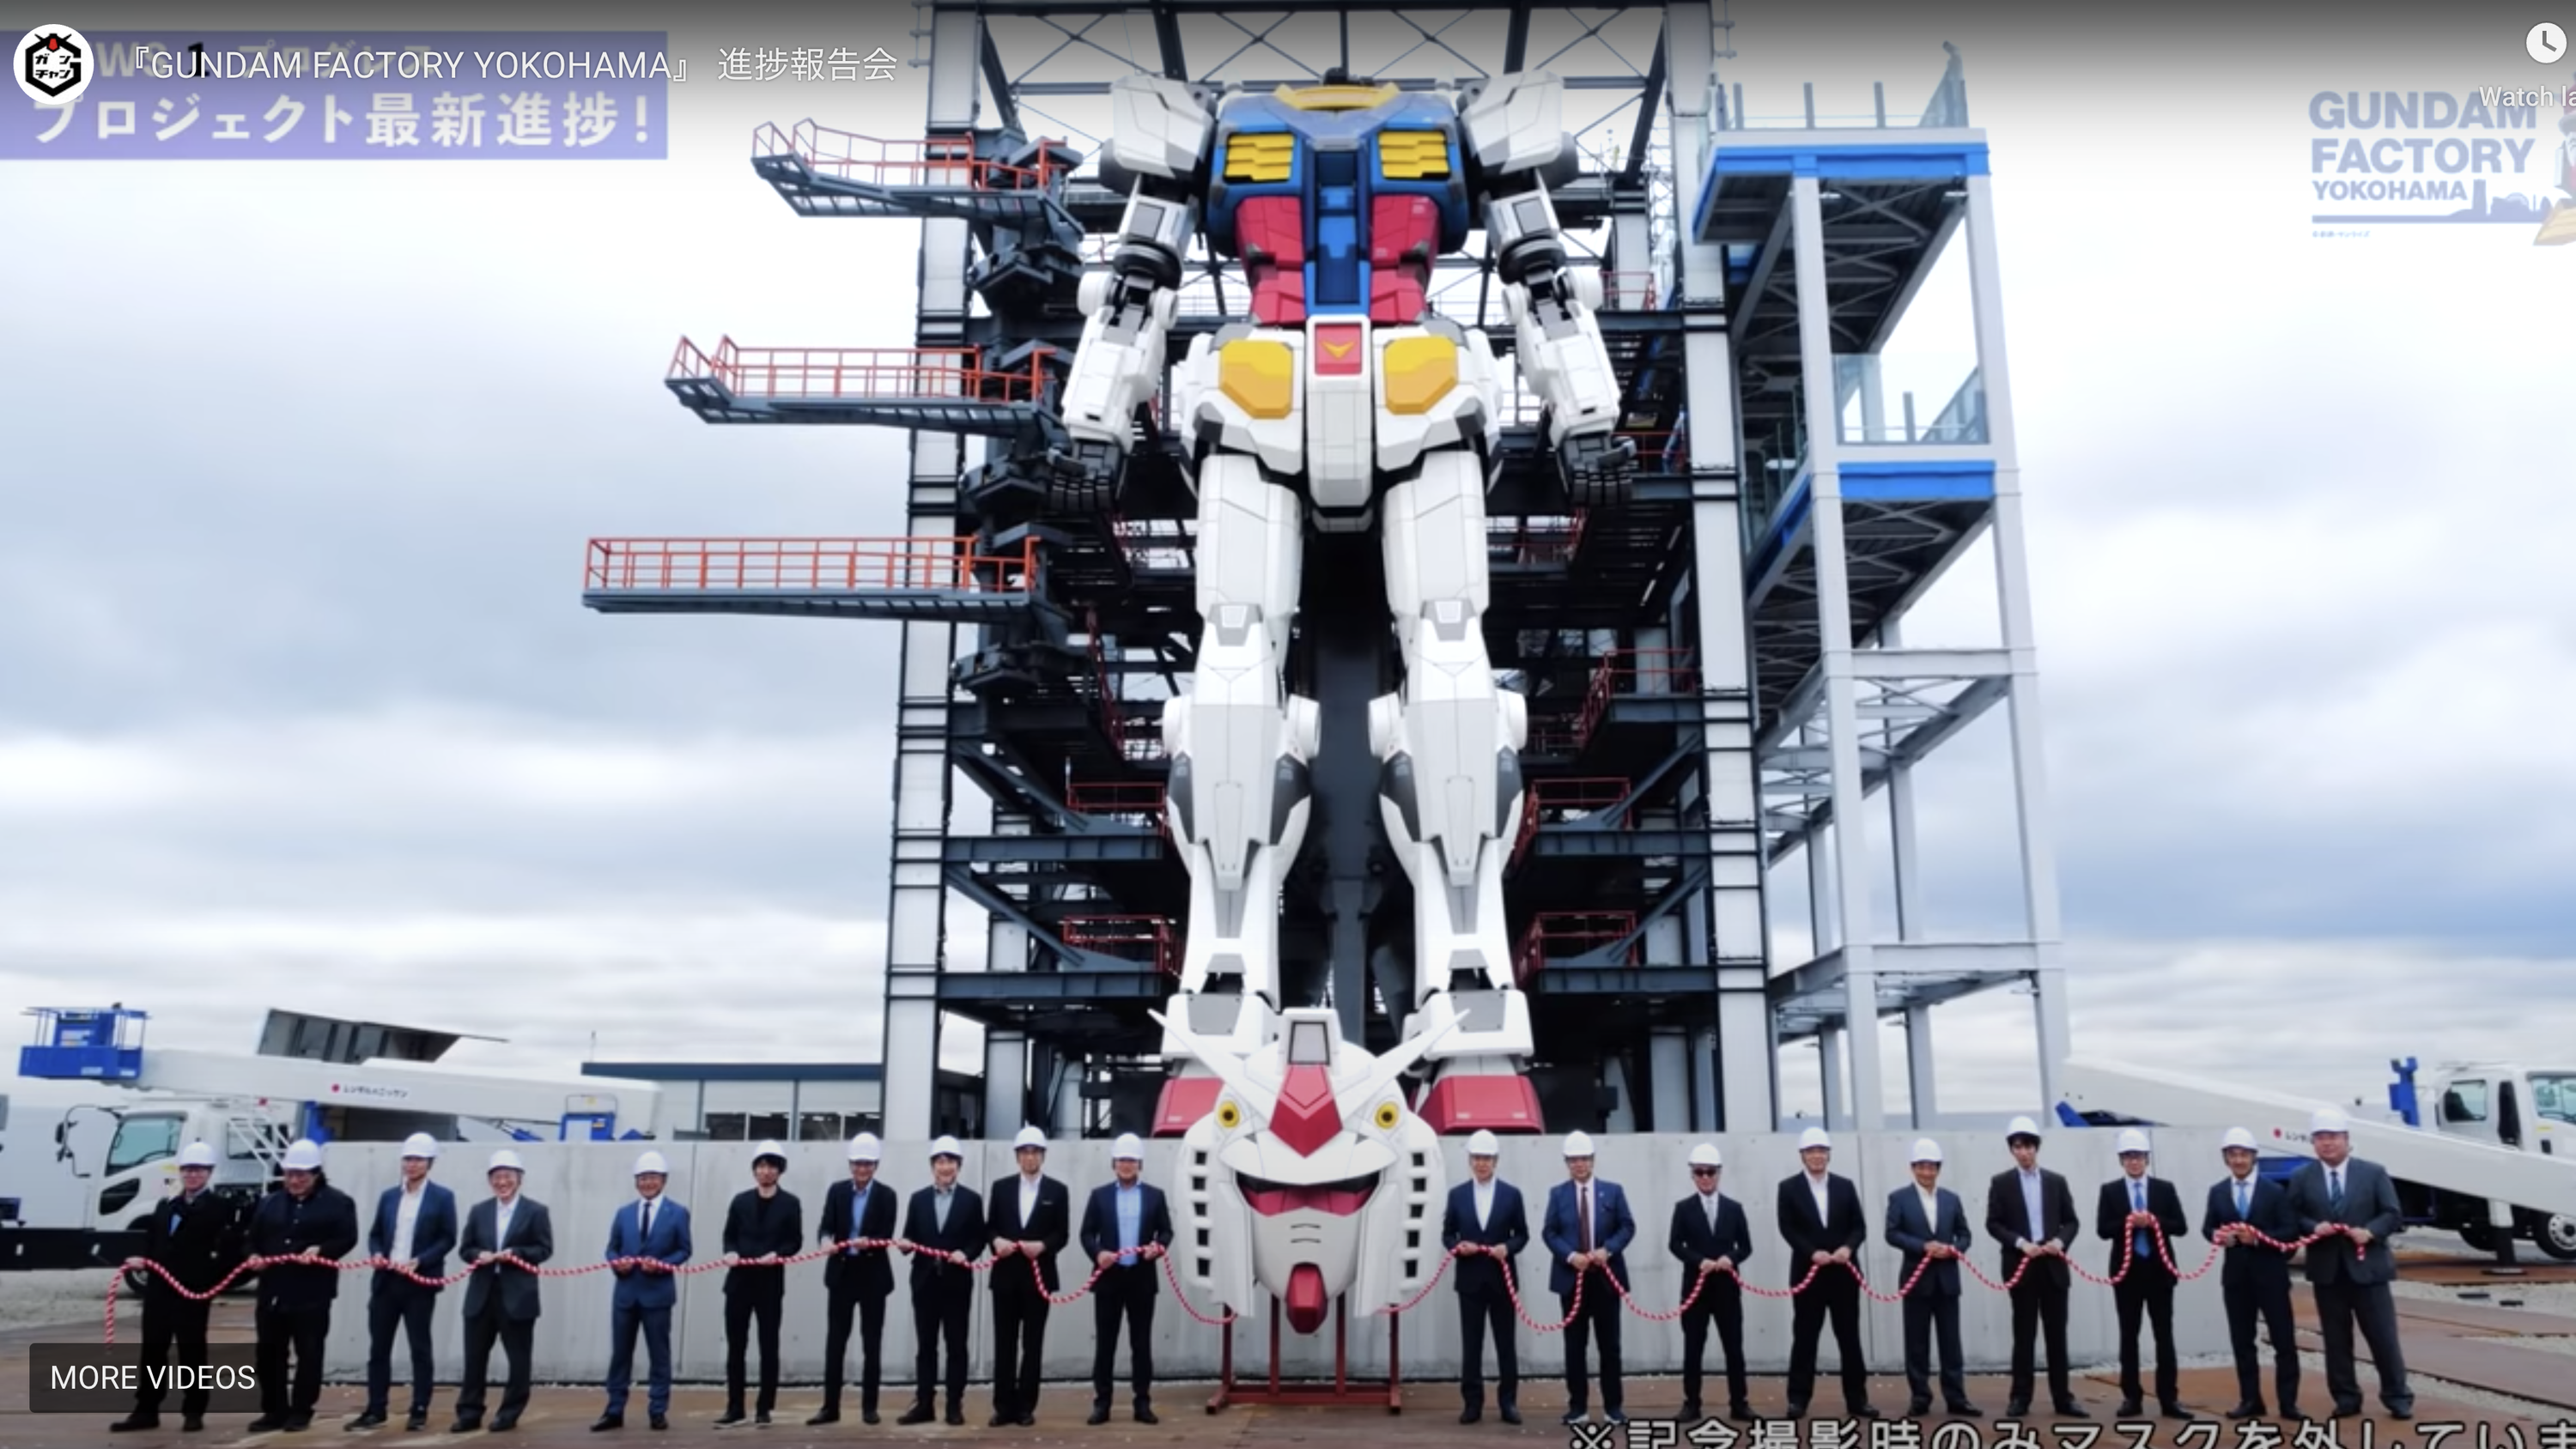 Video: The giant moving Gundam in Yokohama is now complete